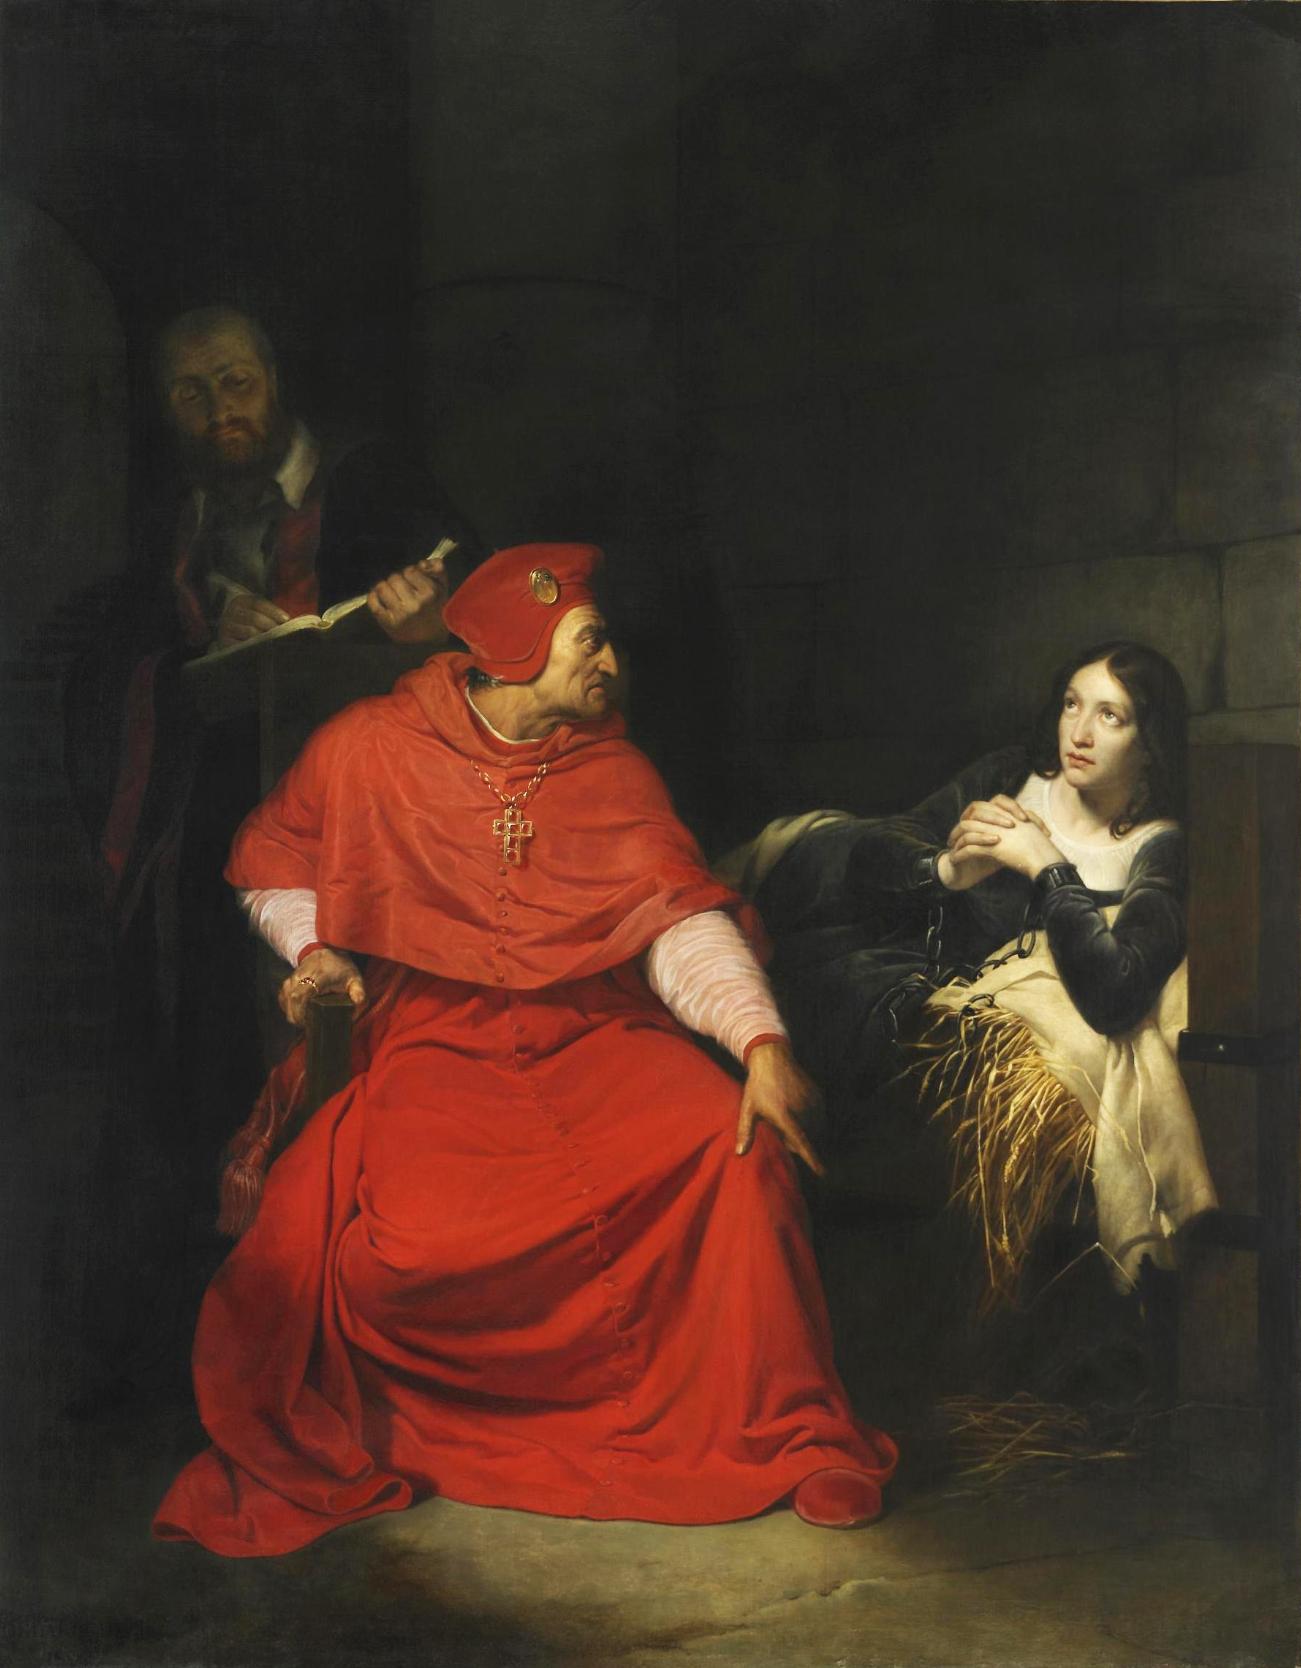 http://upload.wikimedia.org/wikipedia/commons/c/c7/Joan_of_arc_interrogation.jpg